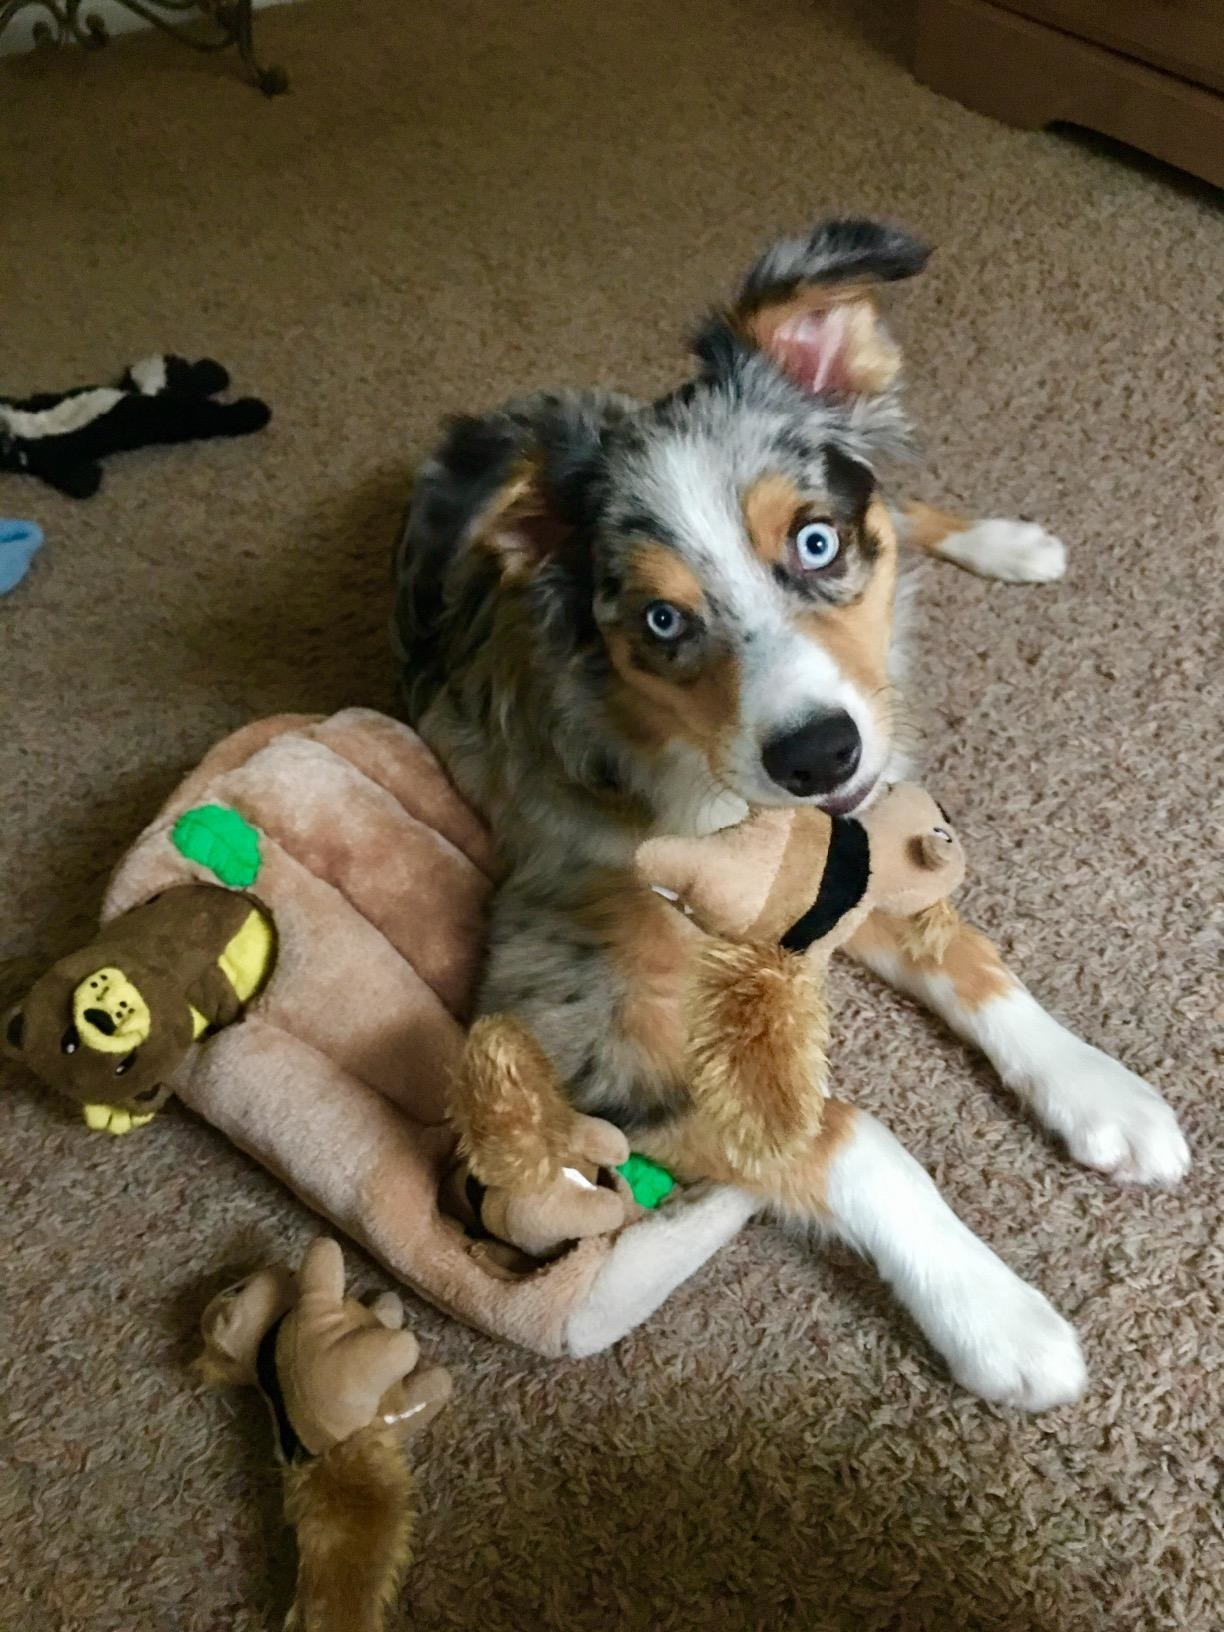 Reviewer photo of their dog playing with the toy